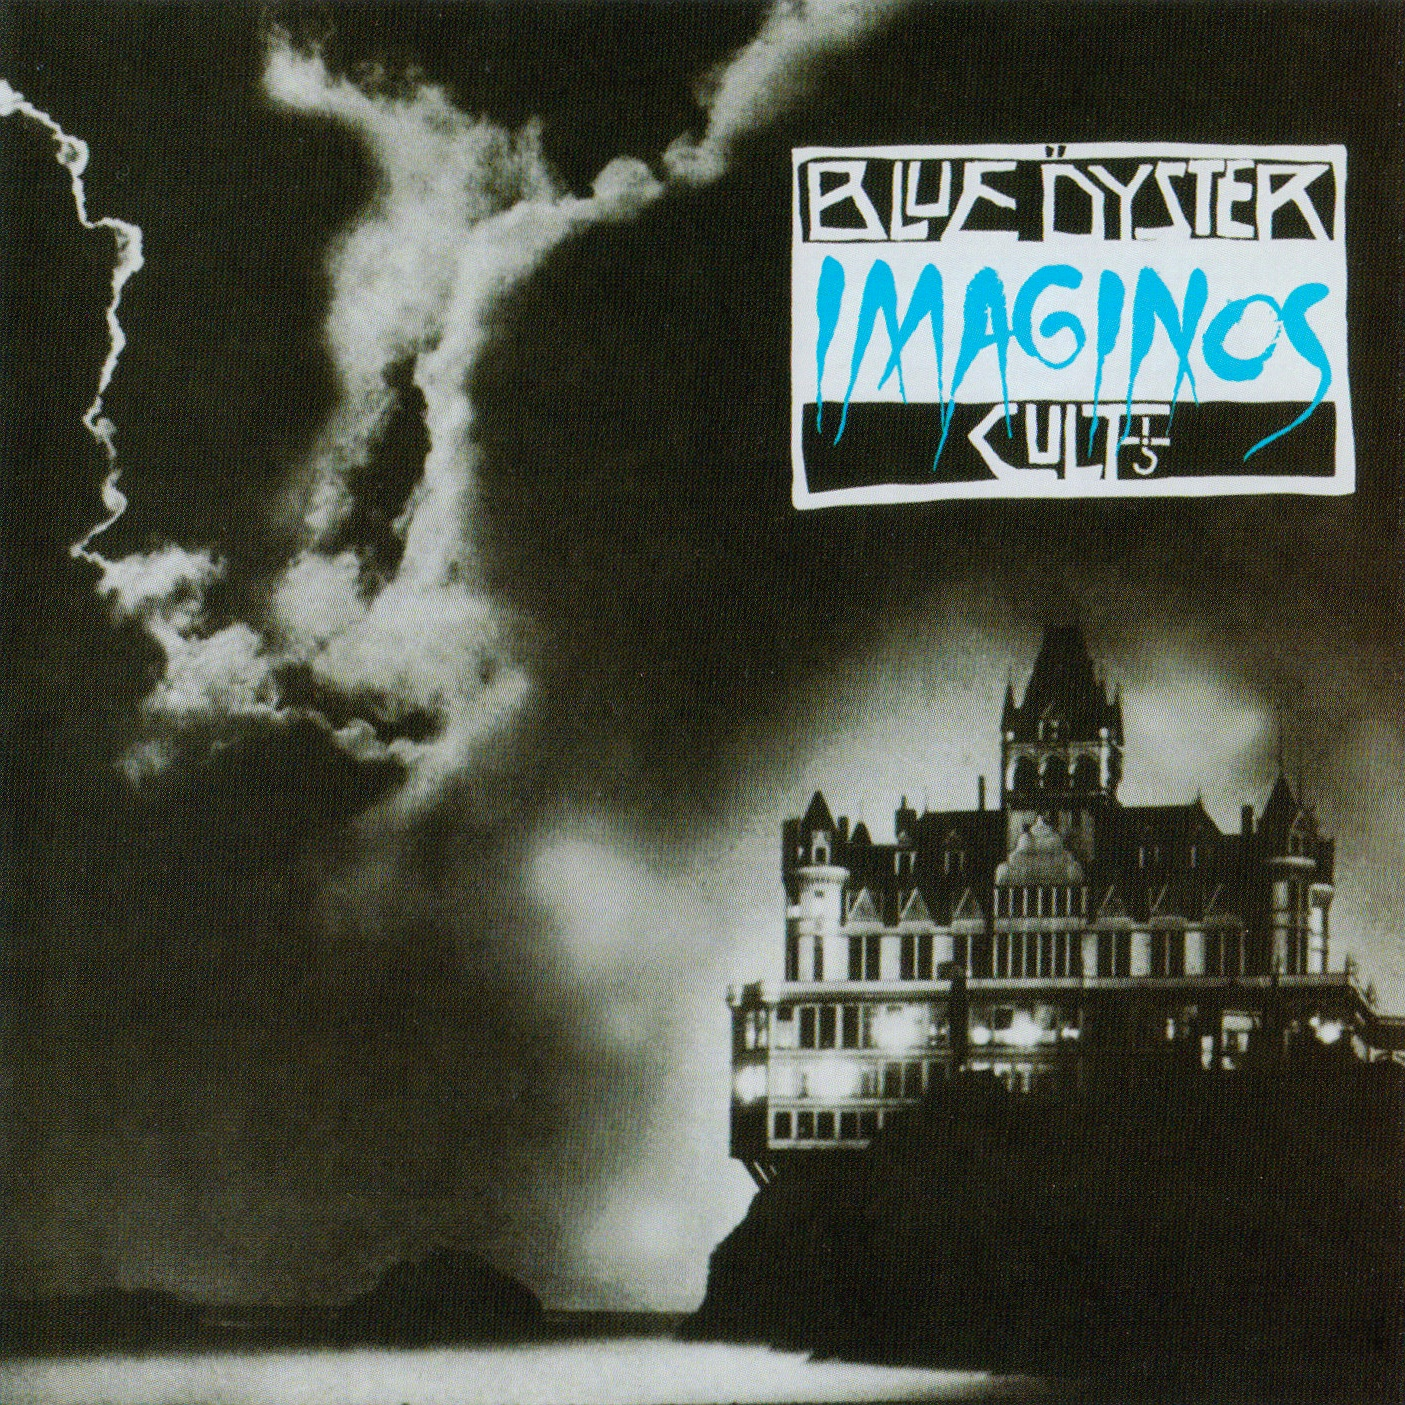 BLUE OYSTER CULT - Imaginos [remastered] (2013) mp3 download